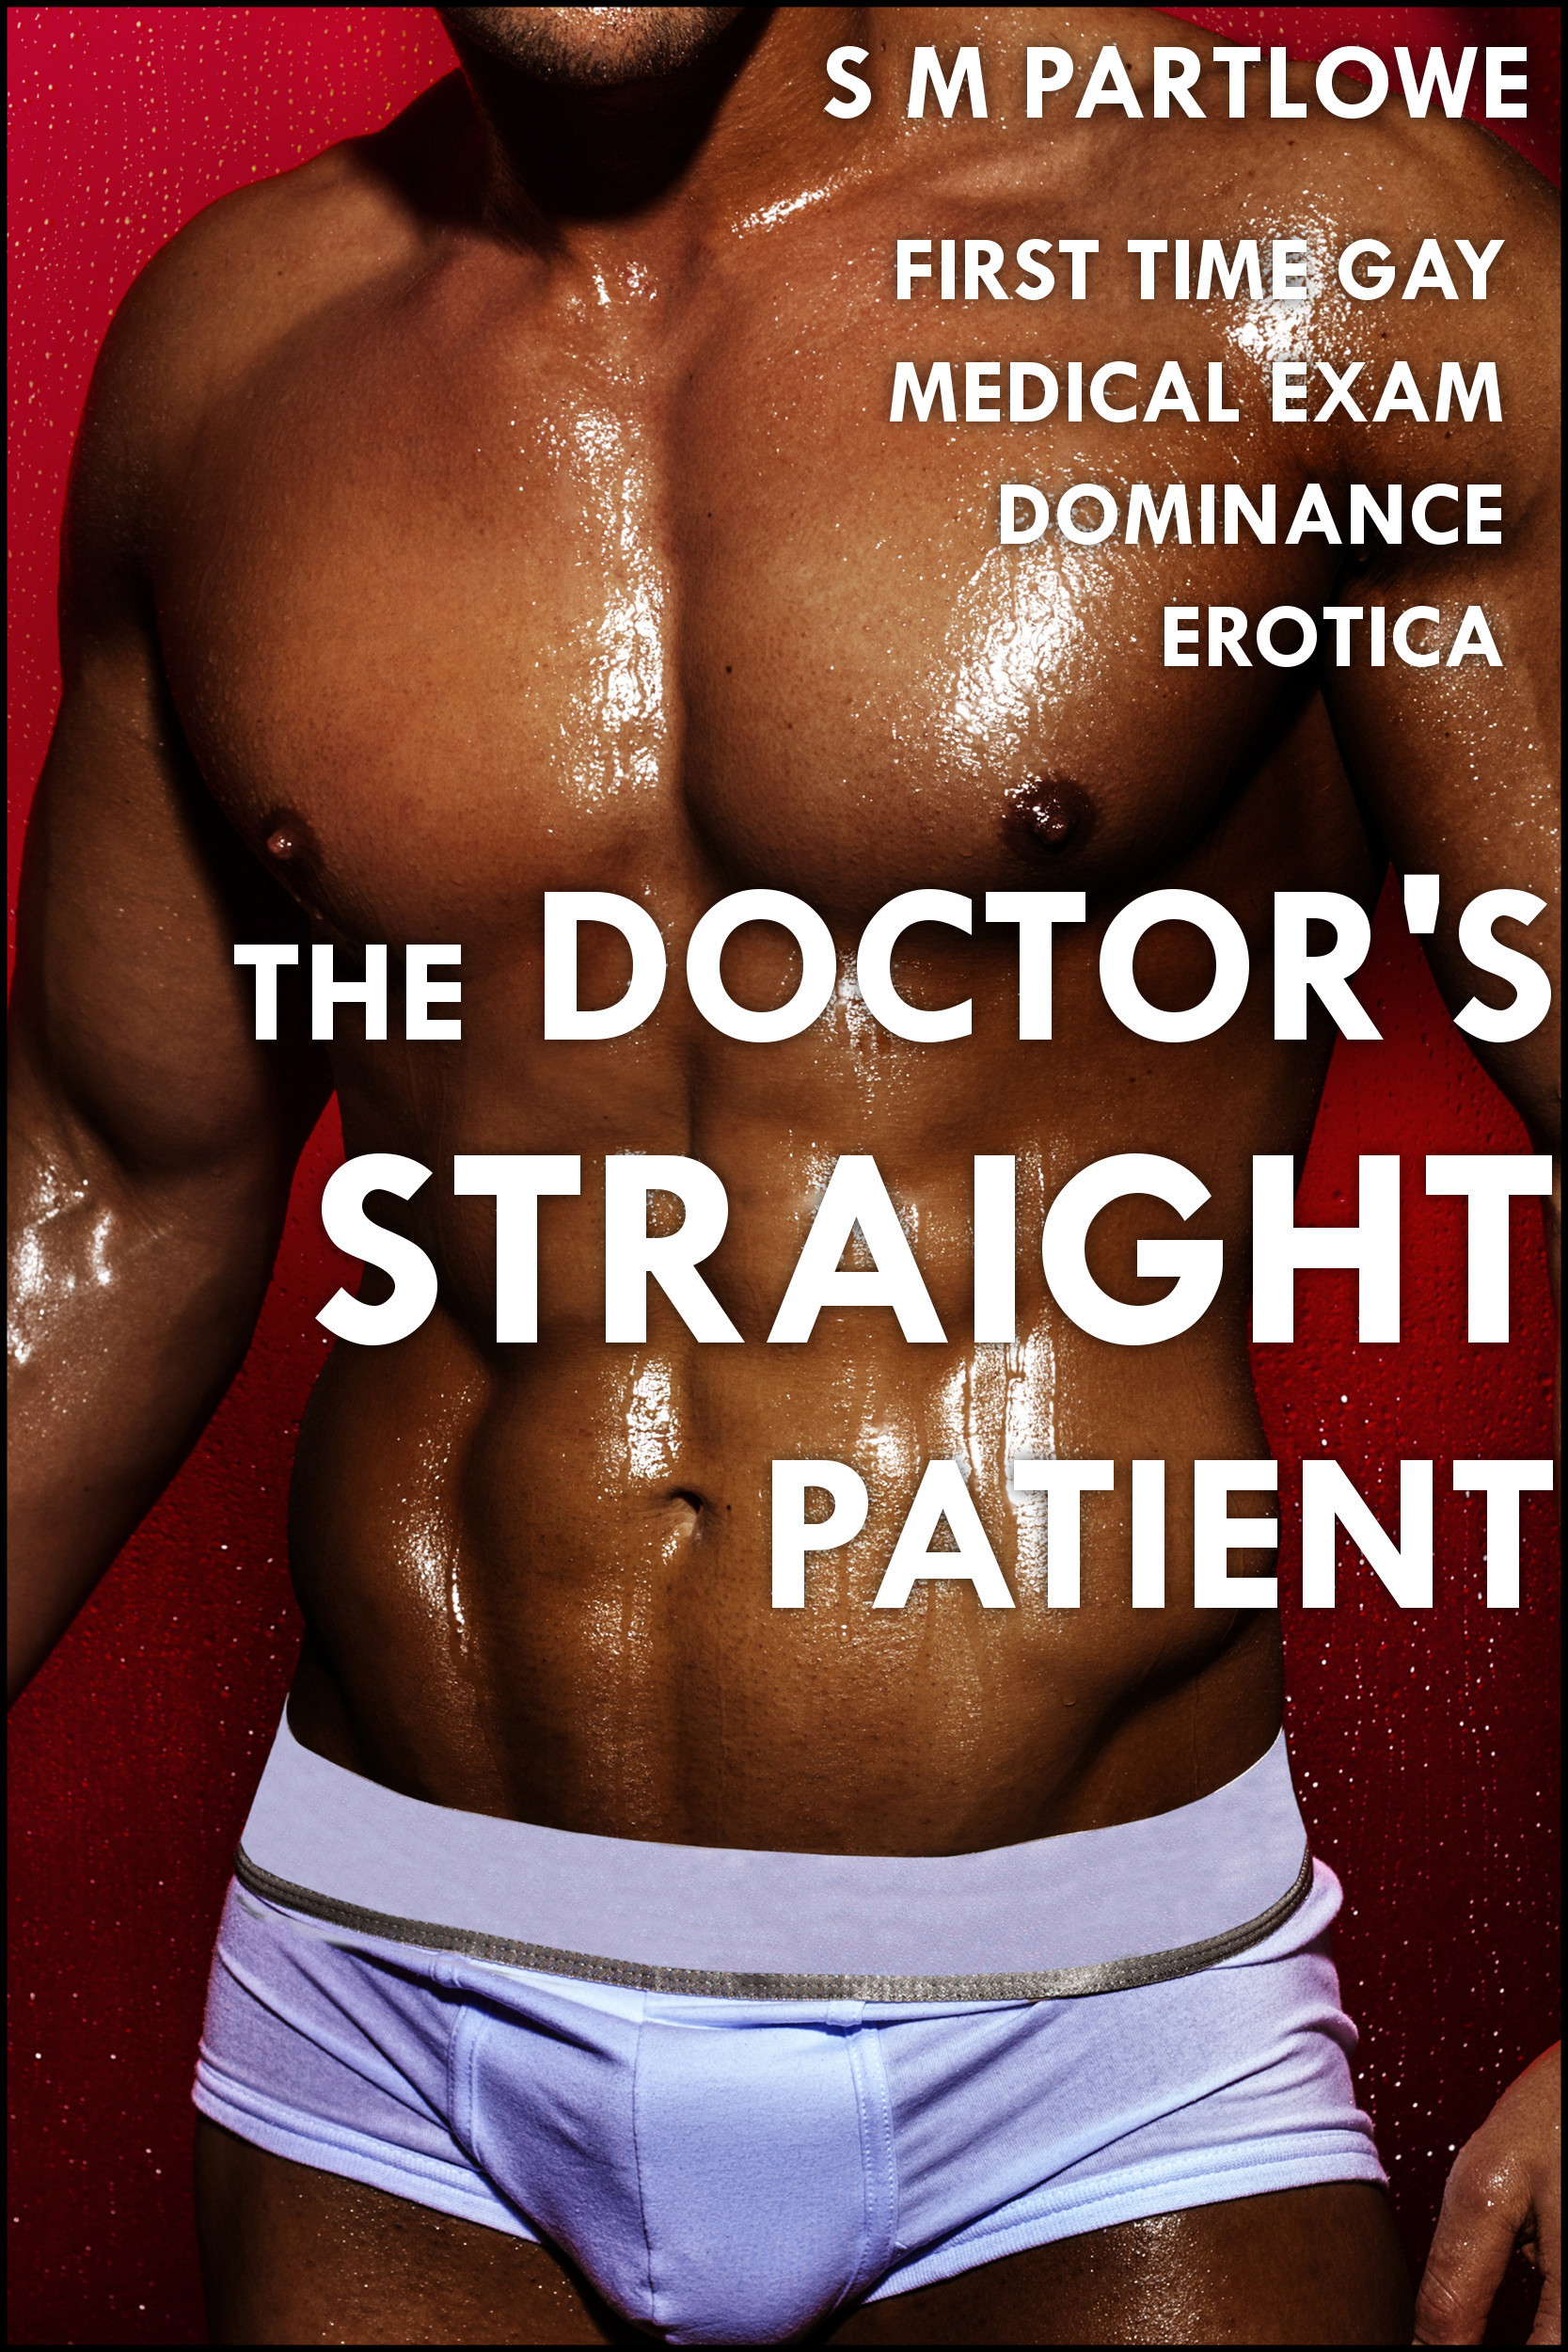 The Doctors Straight Patient S.M. Partlowe